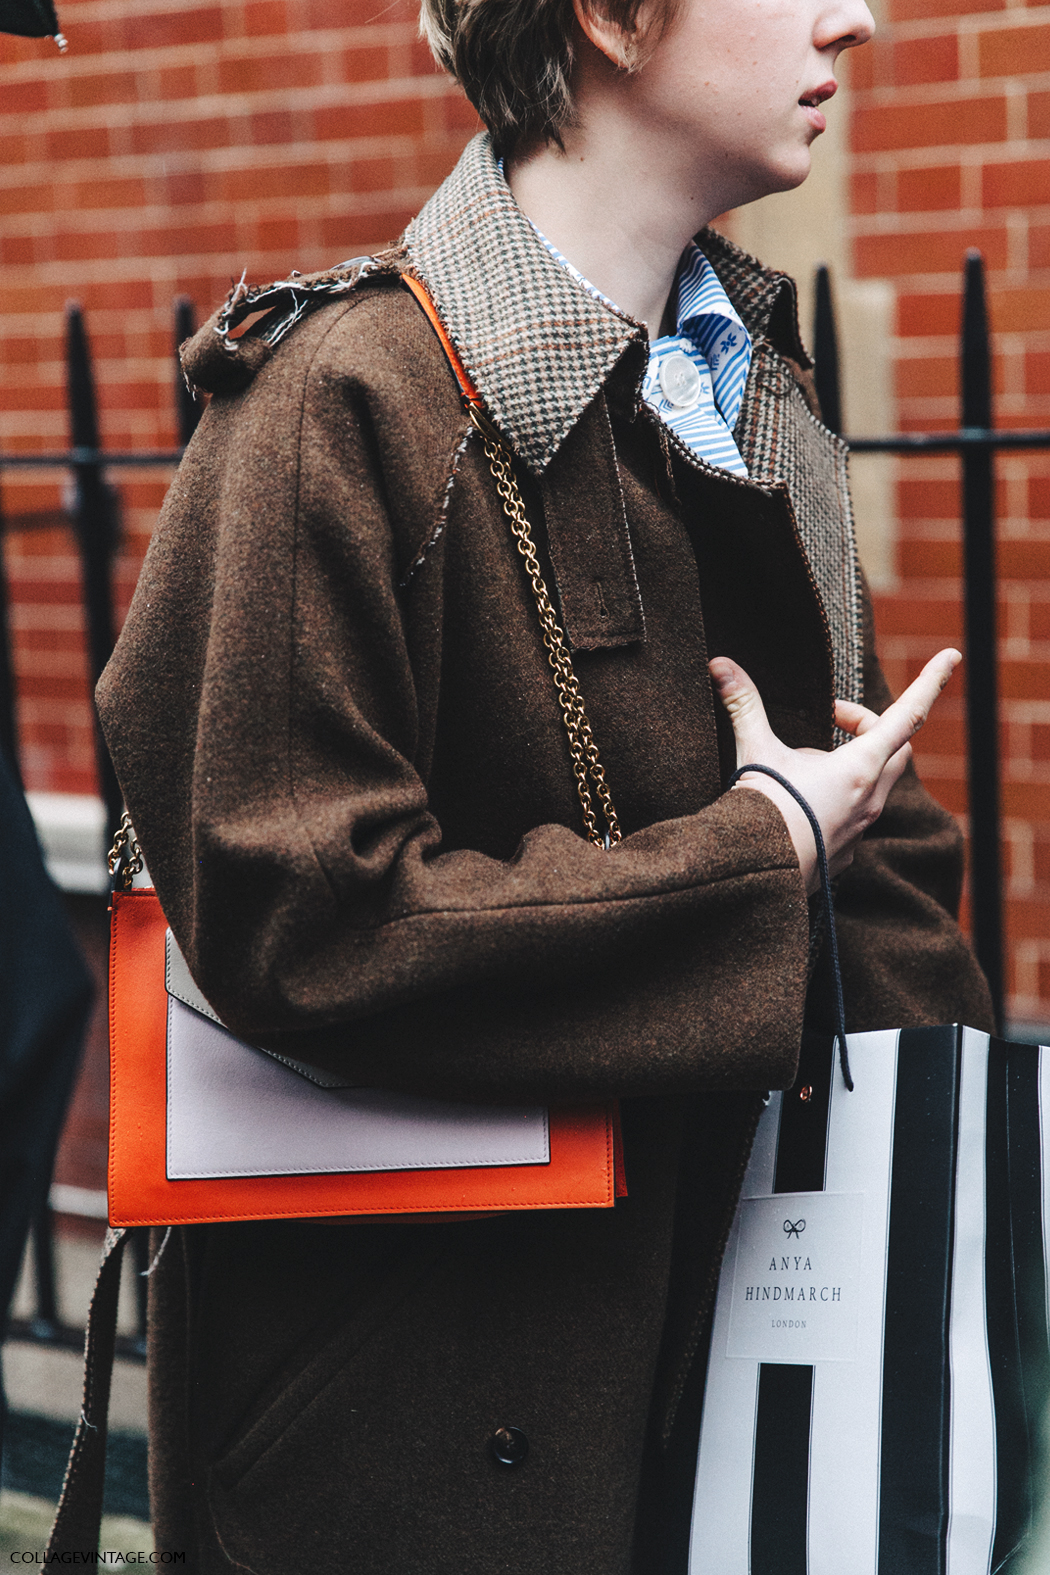 LFW-London_Fashion_Week_Fall_16-Street_Style-Collage_Vintage-Brown_Coat-Celine_Bag-